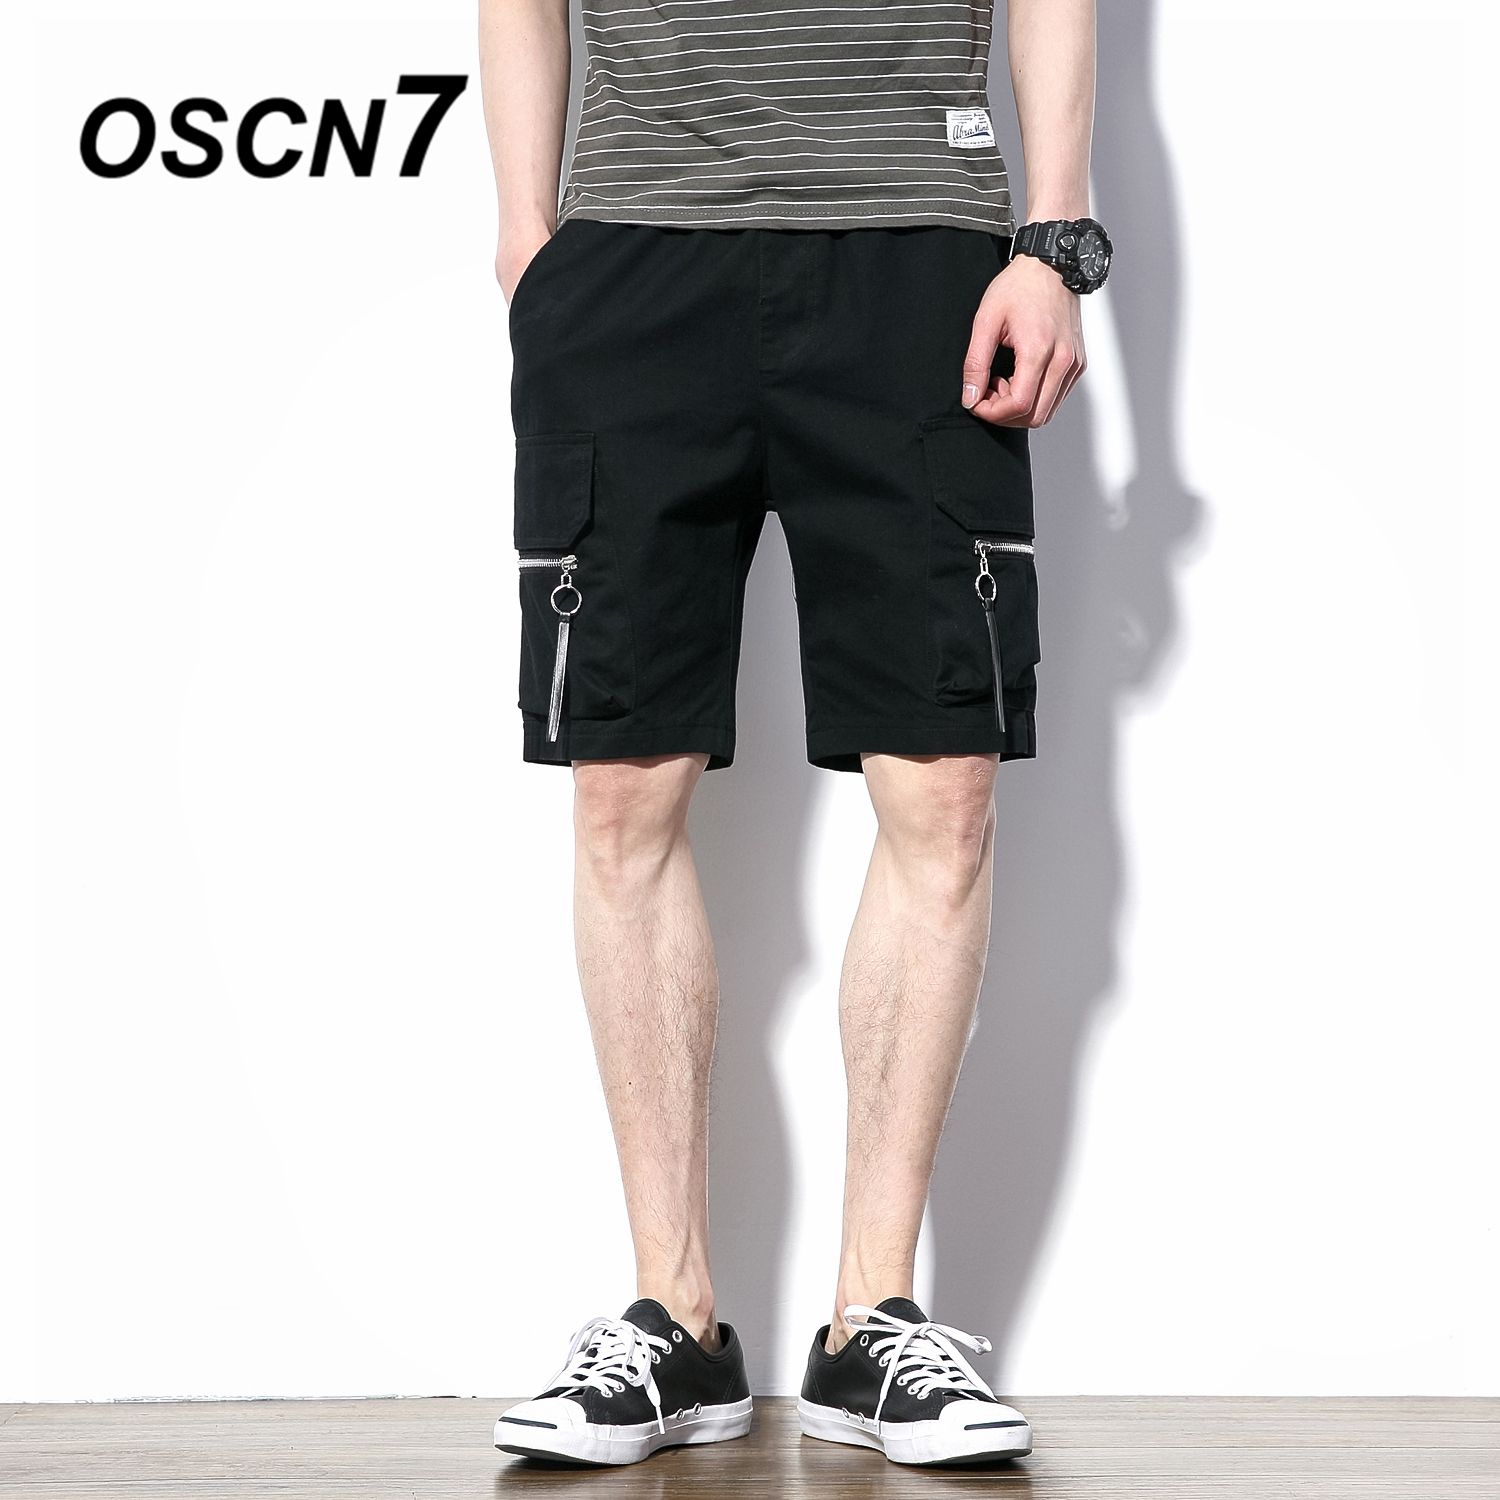 OSCN7 Black Summer Cargo Shorts Pants Casual Summer New Mens Shorts Large Size Short Pants K8161